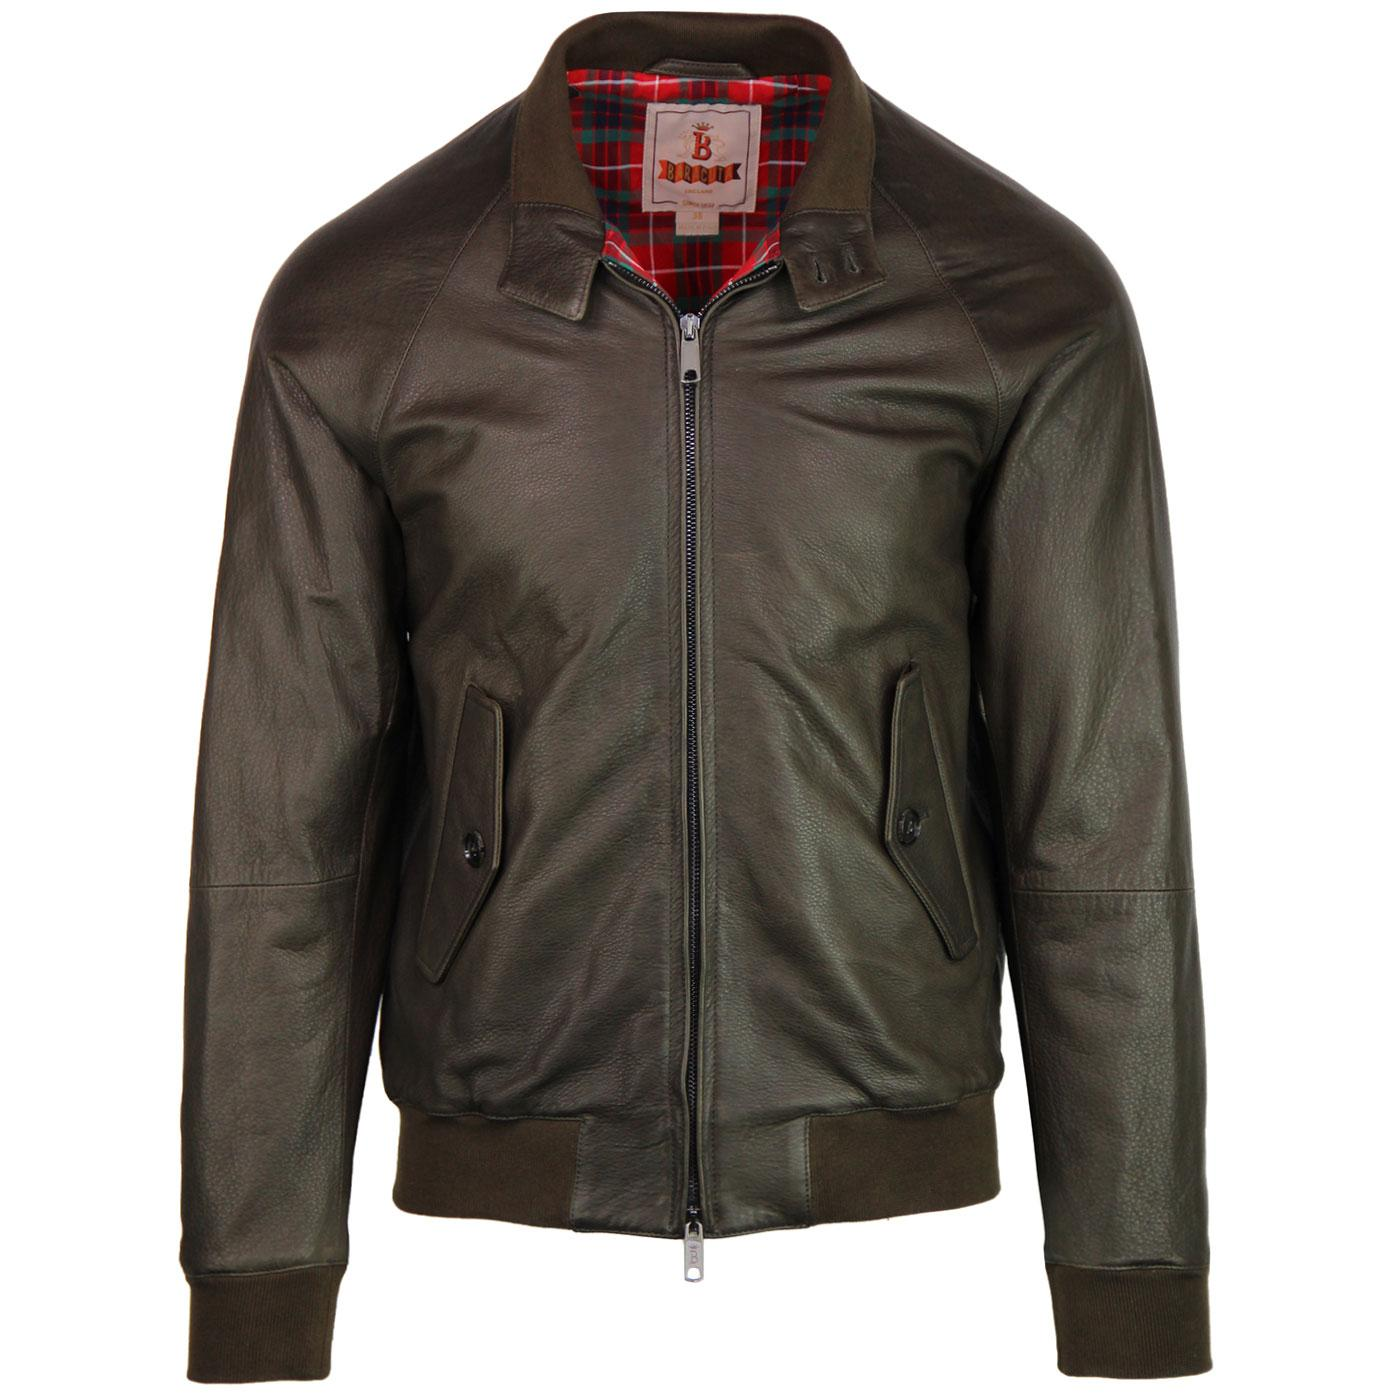 BARACUTA G9 Leather Mod Harrington Jacket (Taupe)